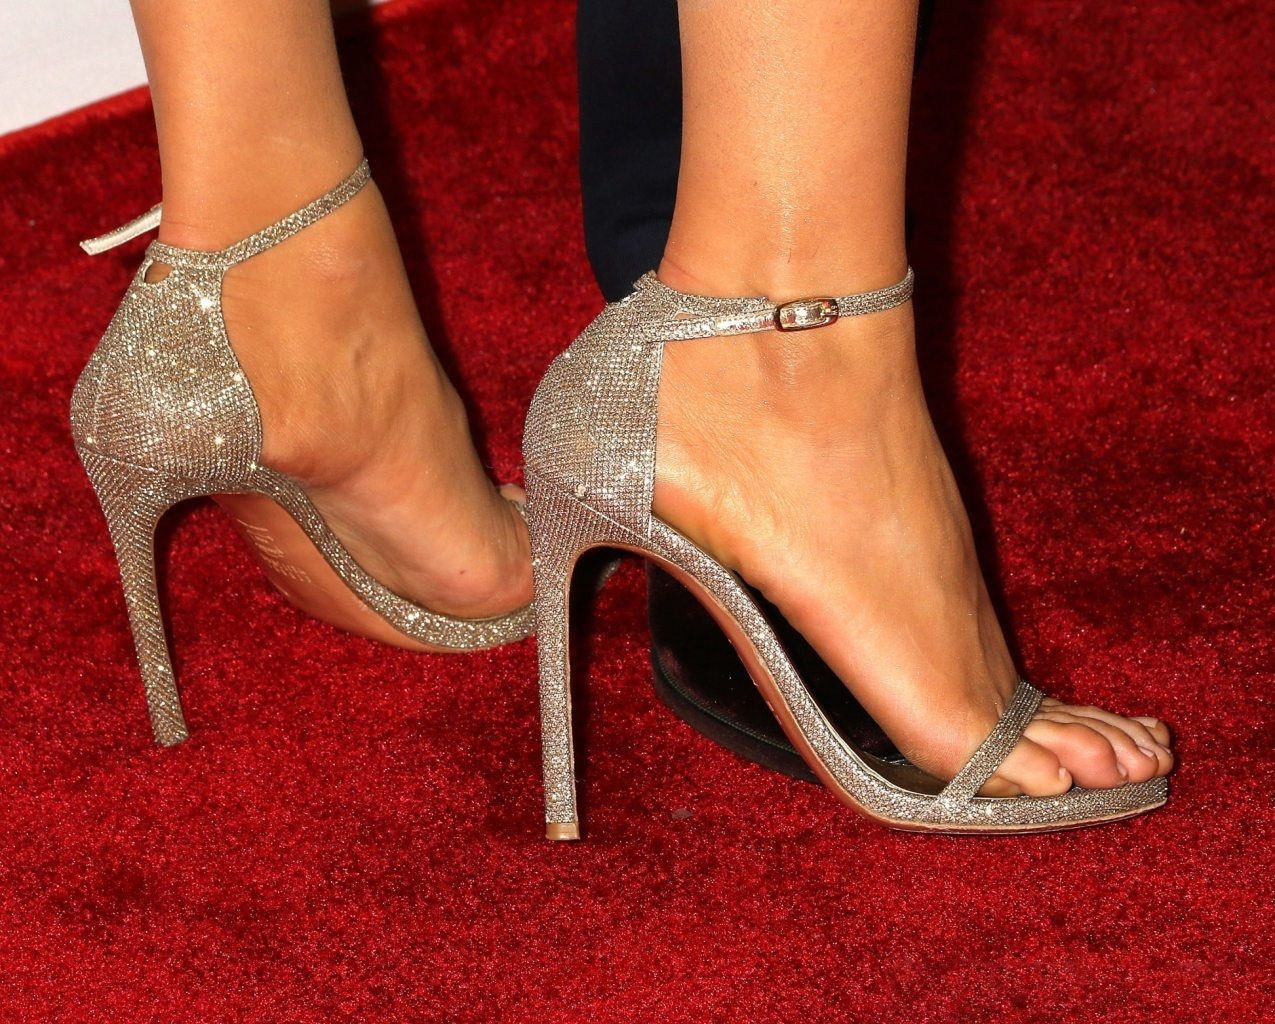 Blake Lively Feet Succulent Toes And Those Soles Look So